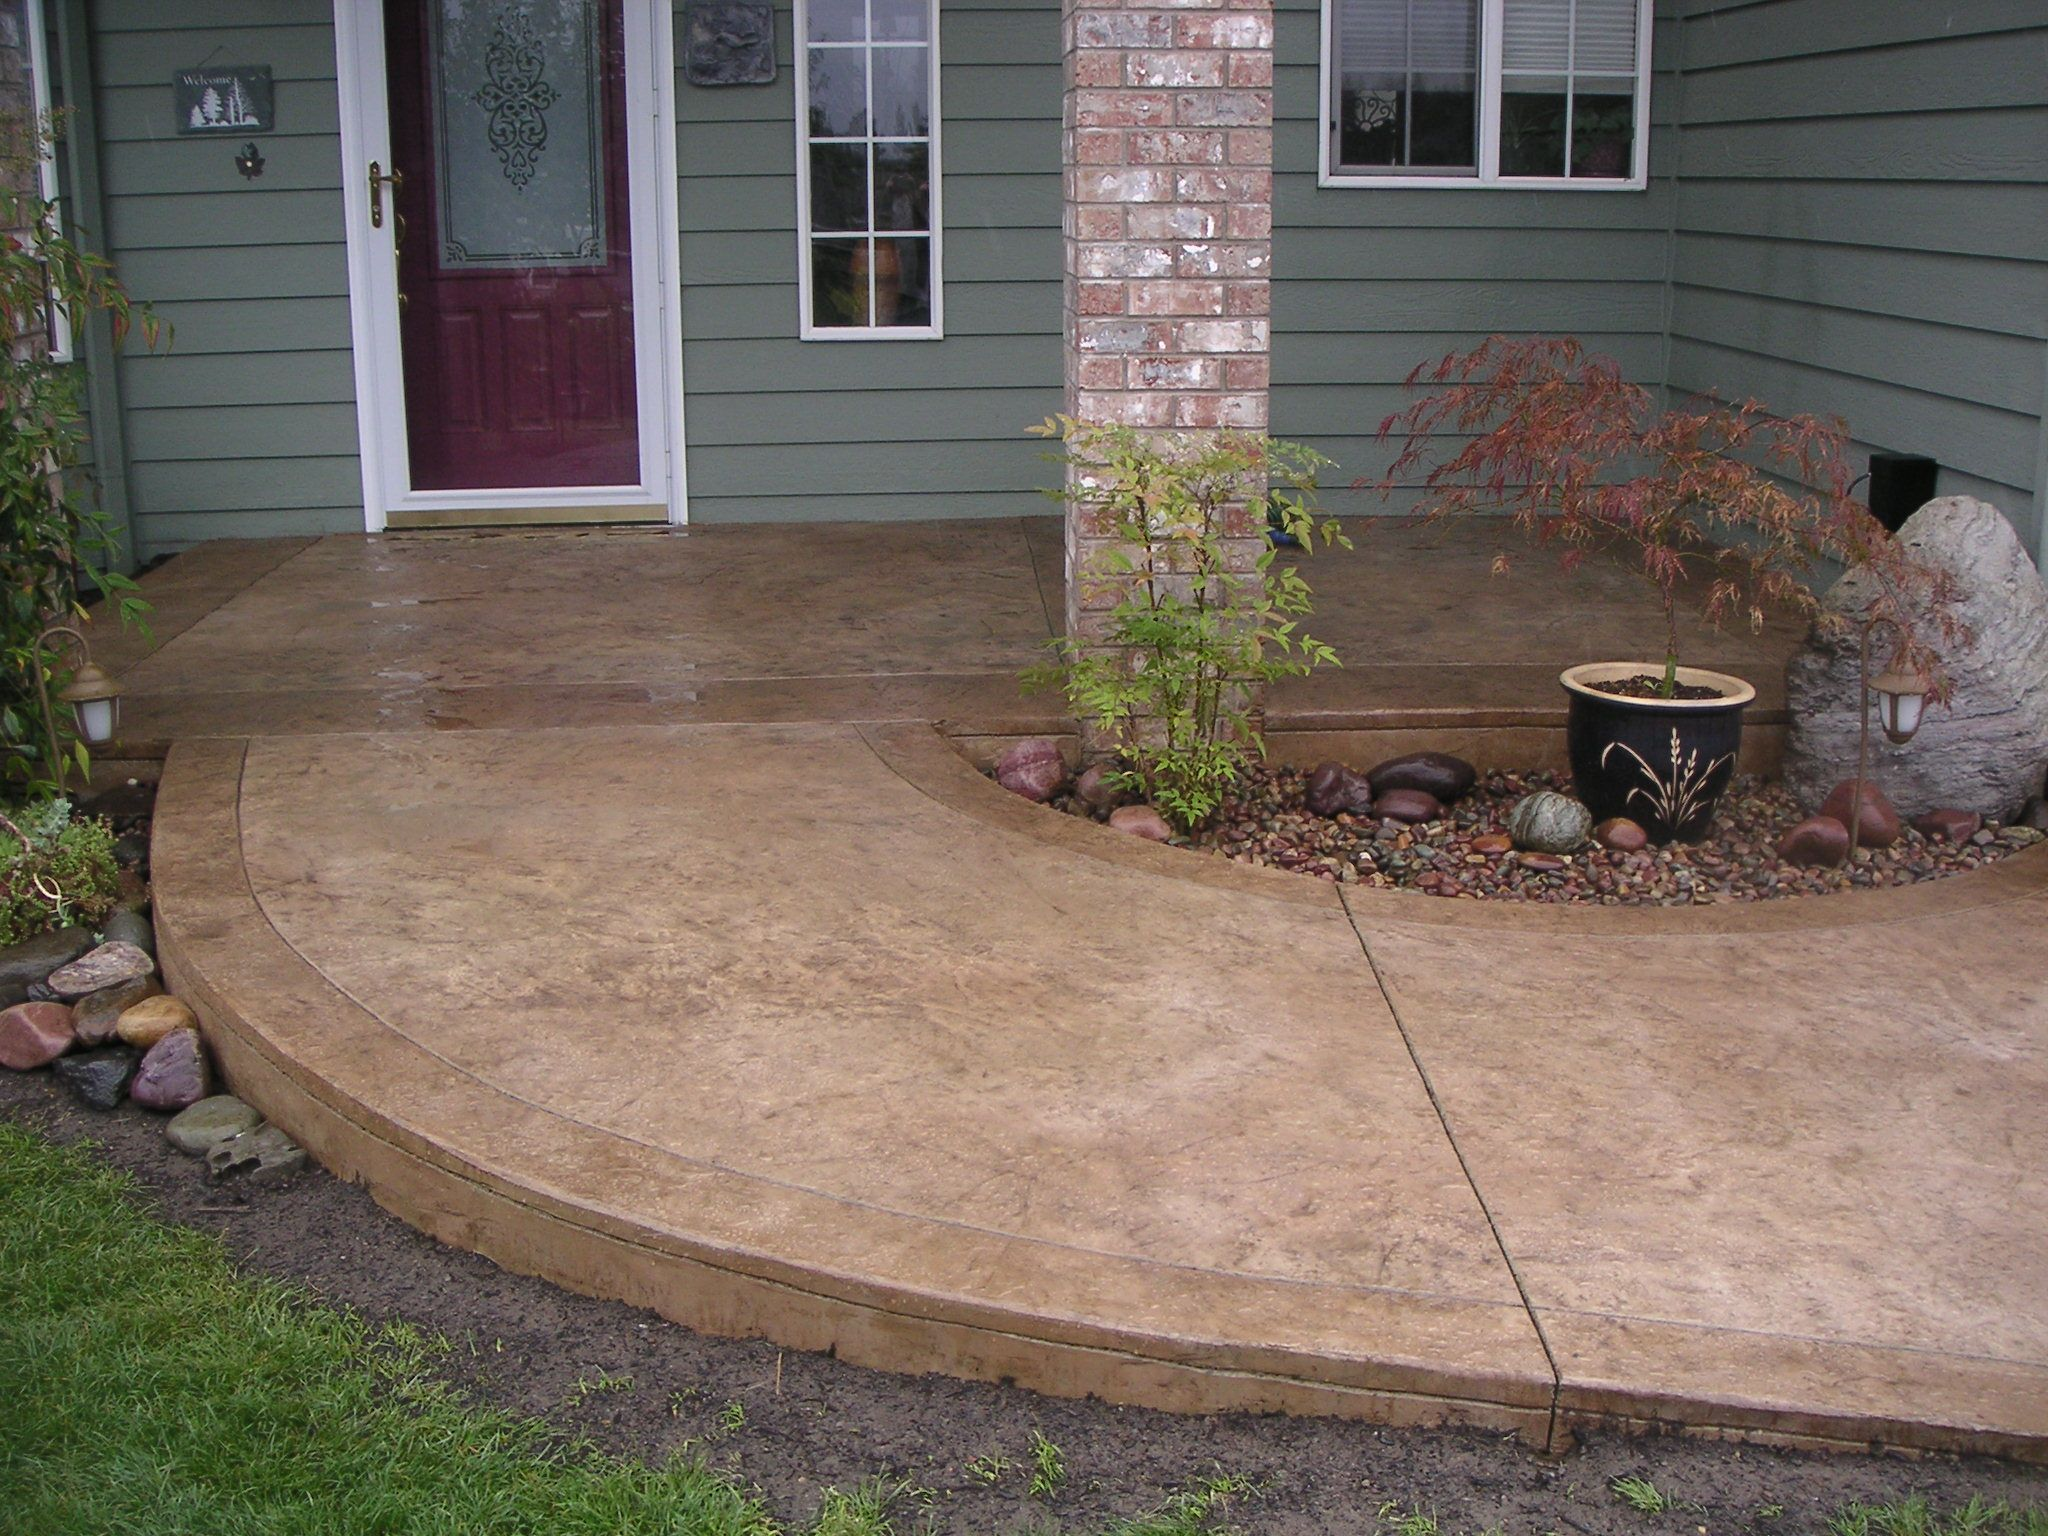 stained cement porch | Concrete Walkway Ideas - Cement Walkways ...